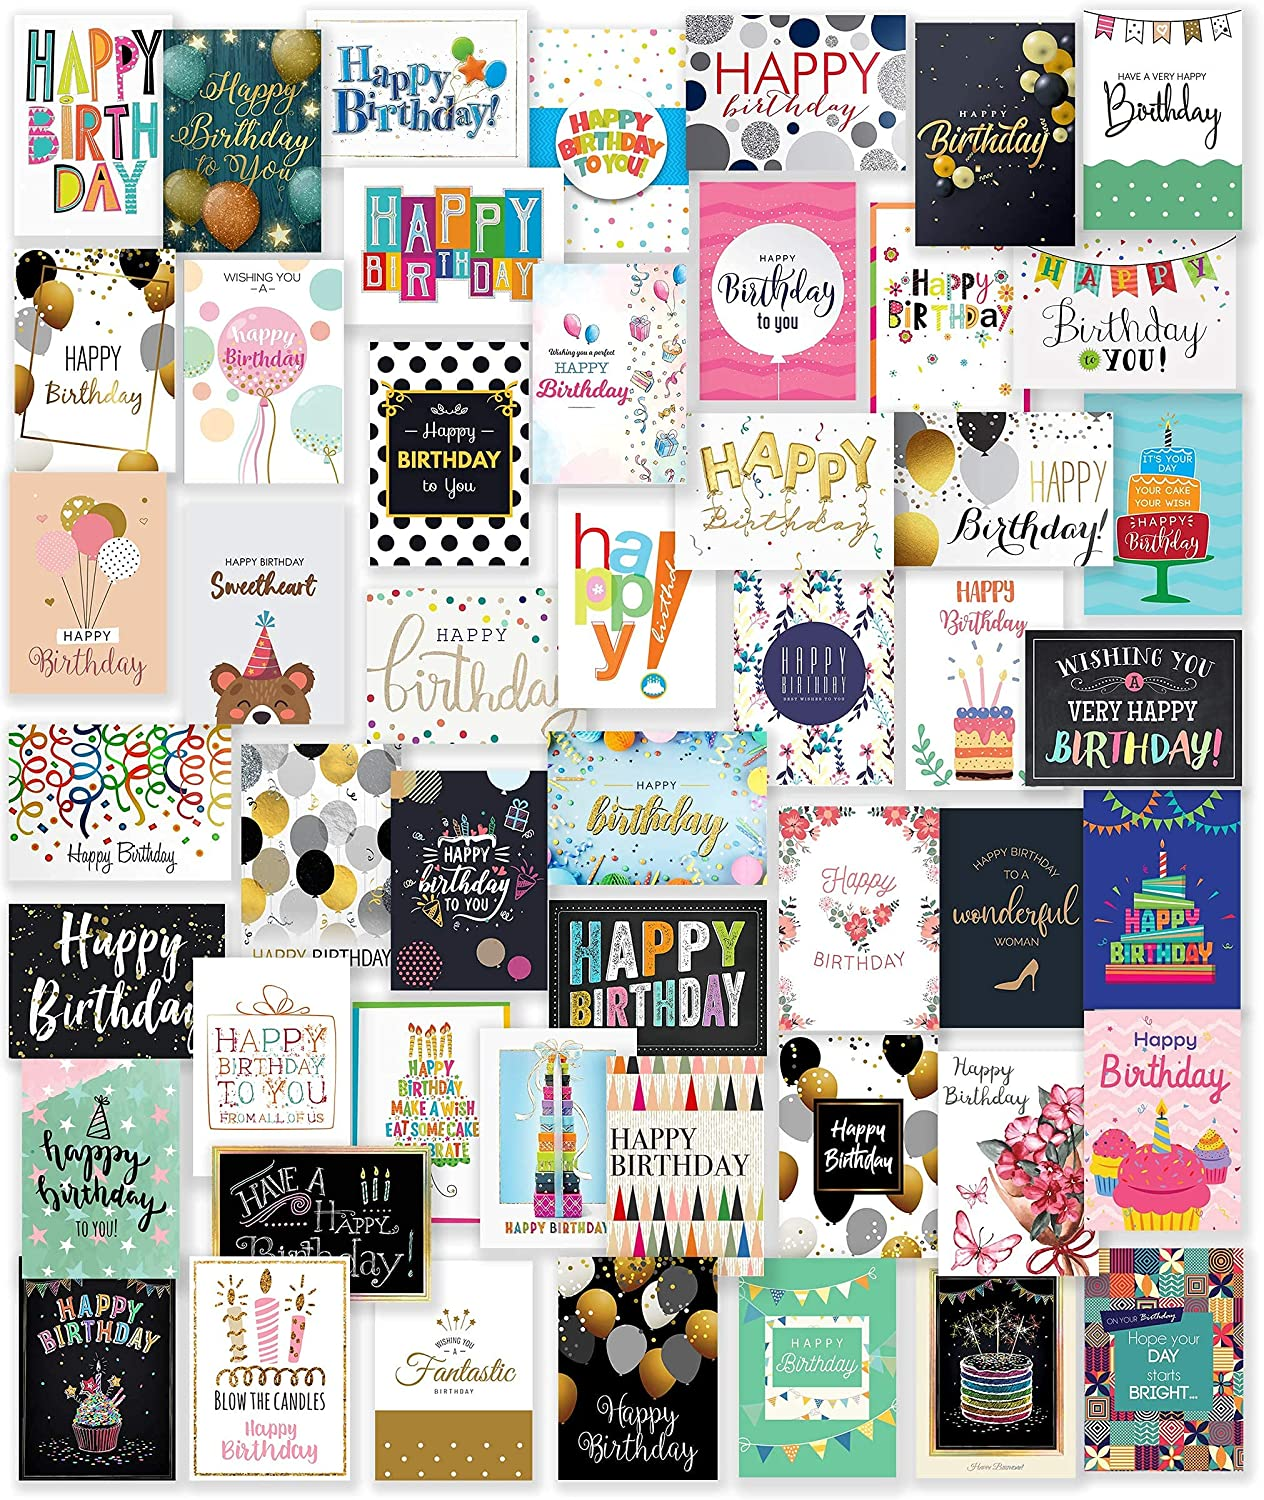 50 Unique Happy Birthday Cards Direct sale of manufacturer Assortment 5x7 Inch with 25 Bombing new work Large